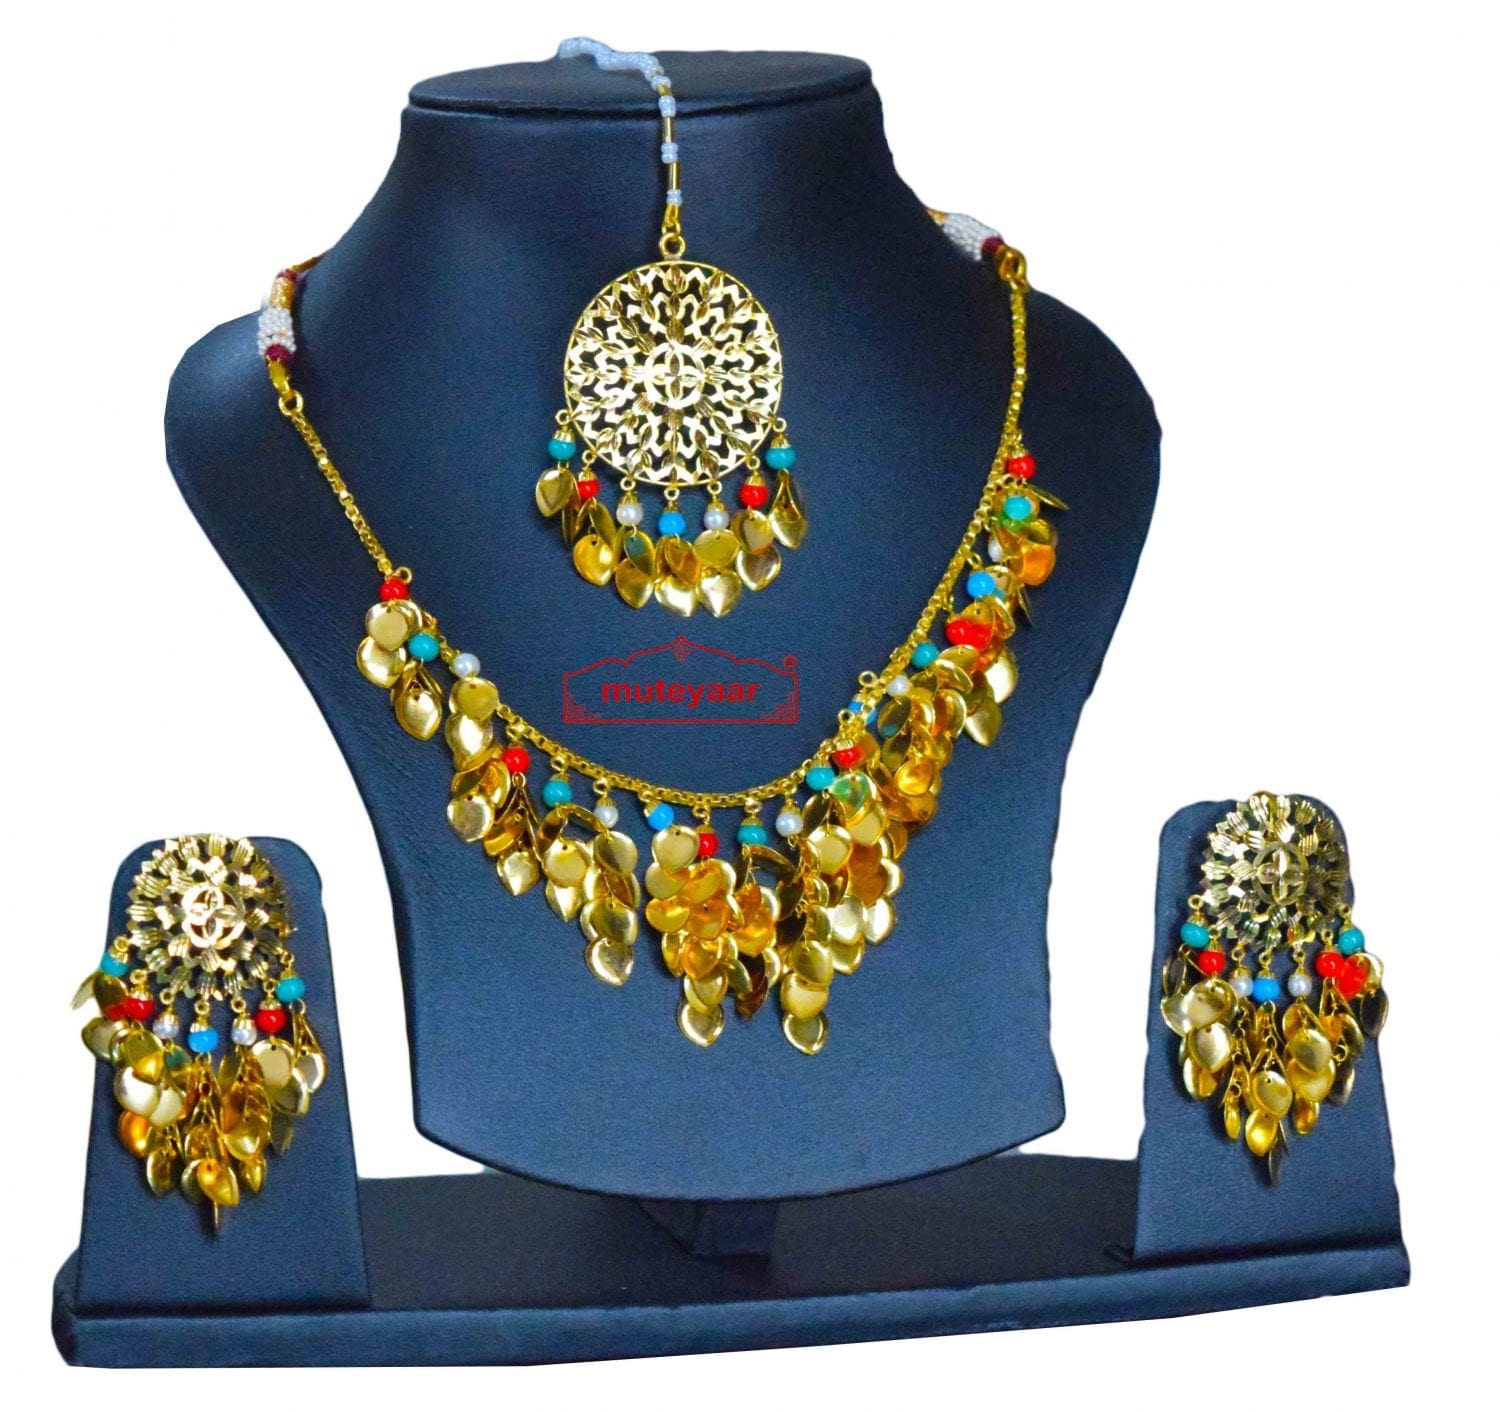 Traditional Punjabi Jewellery 24 Ct. Gold Plated Necklace Earrings Tikka set J0398 1